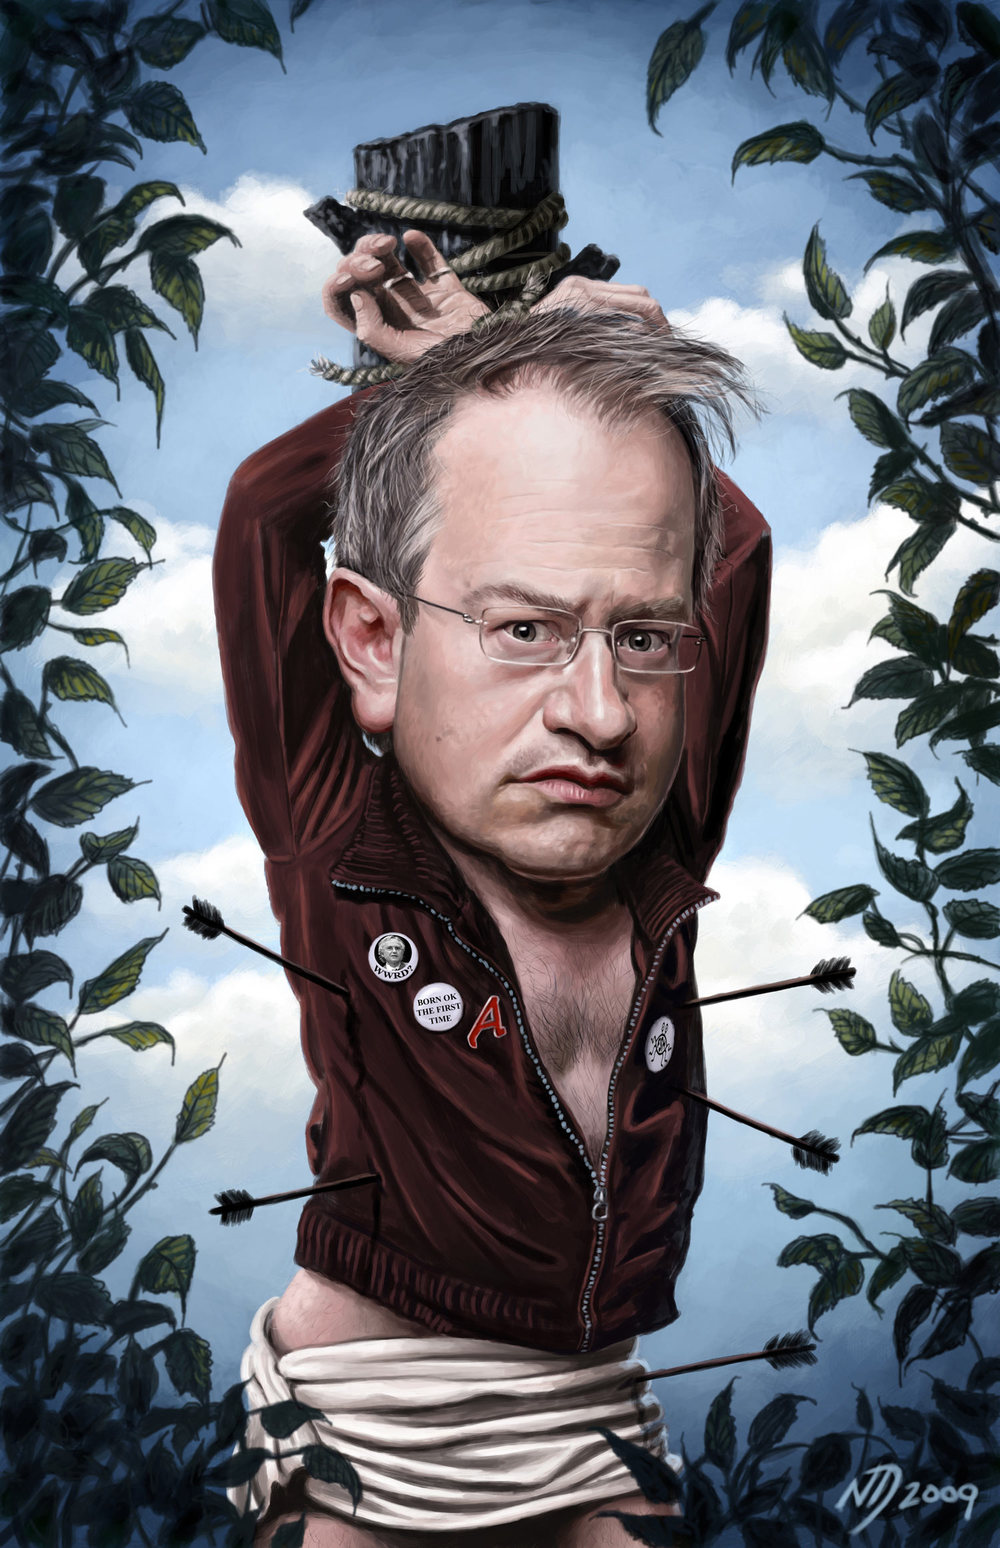 Robin Ince by Neil Davies